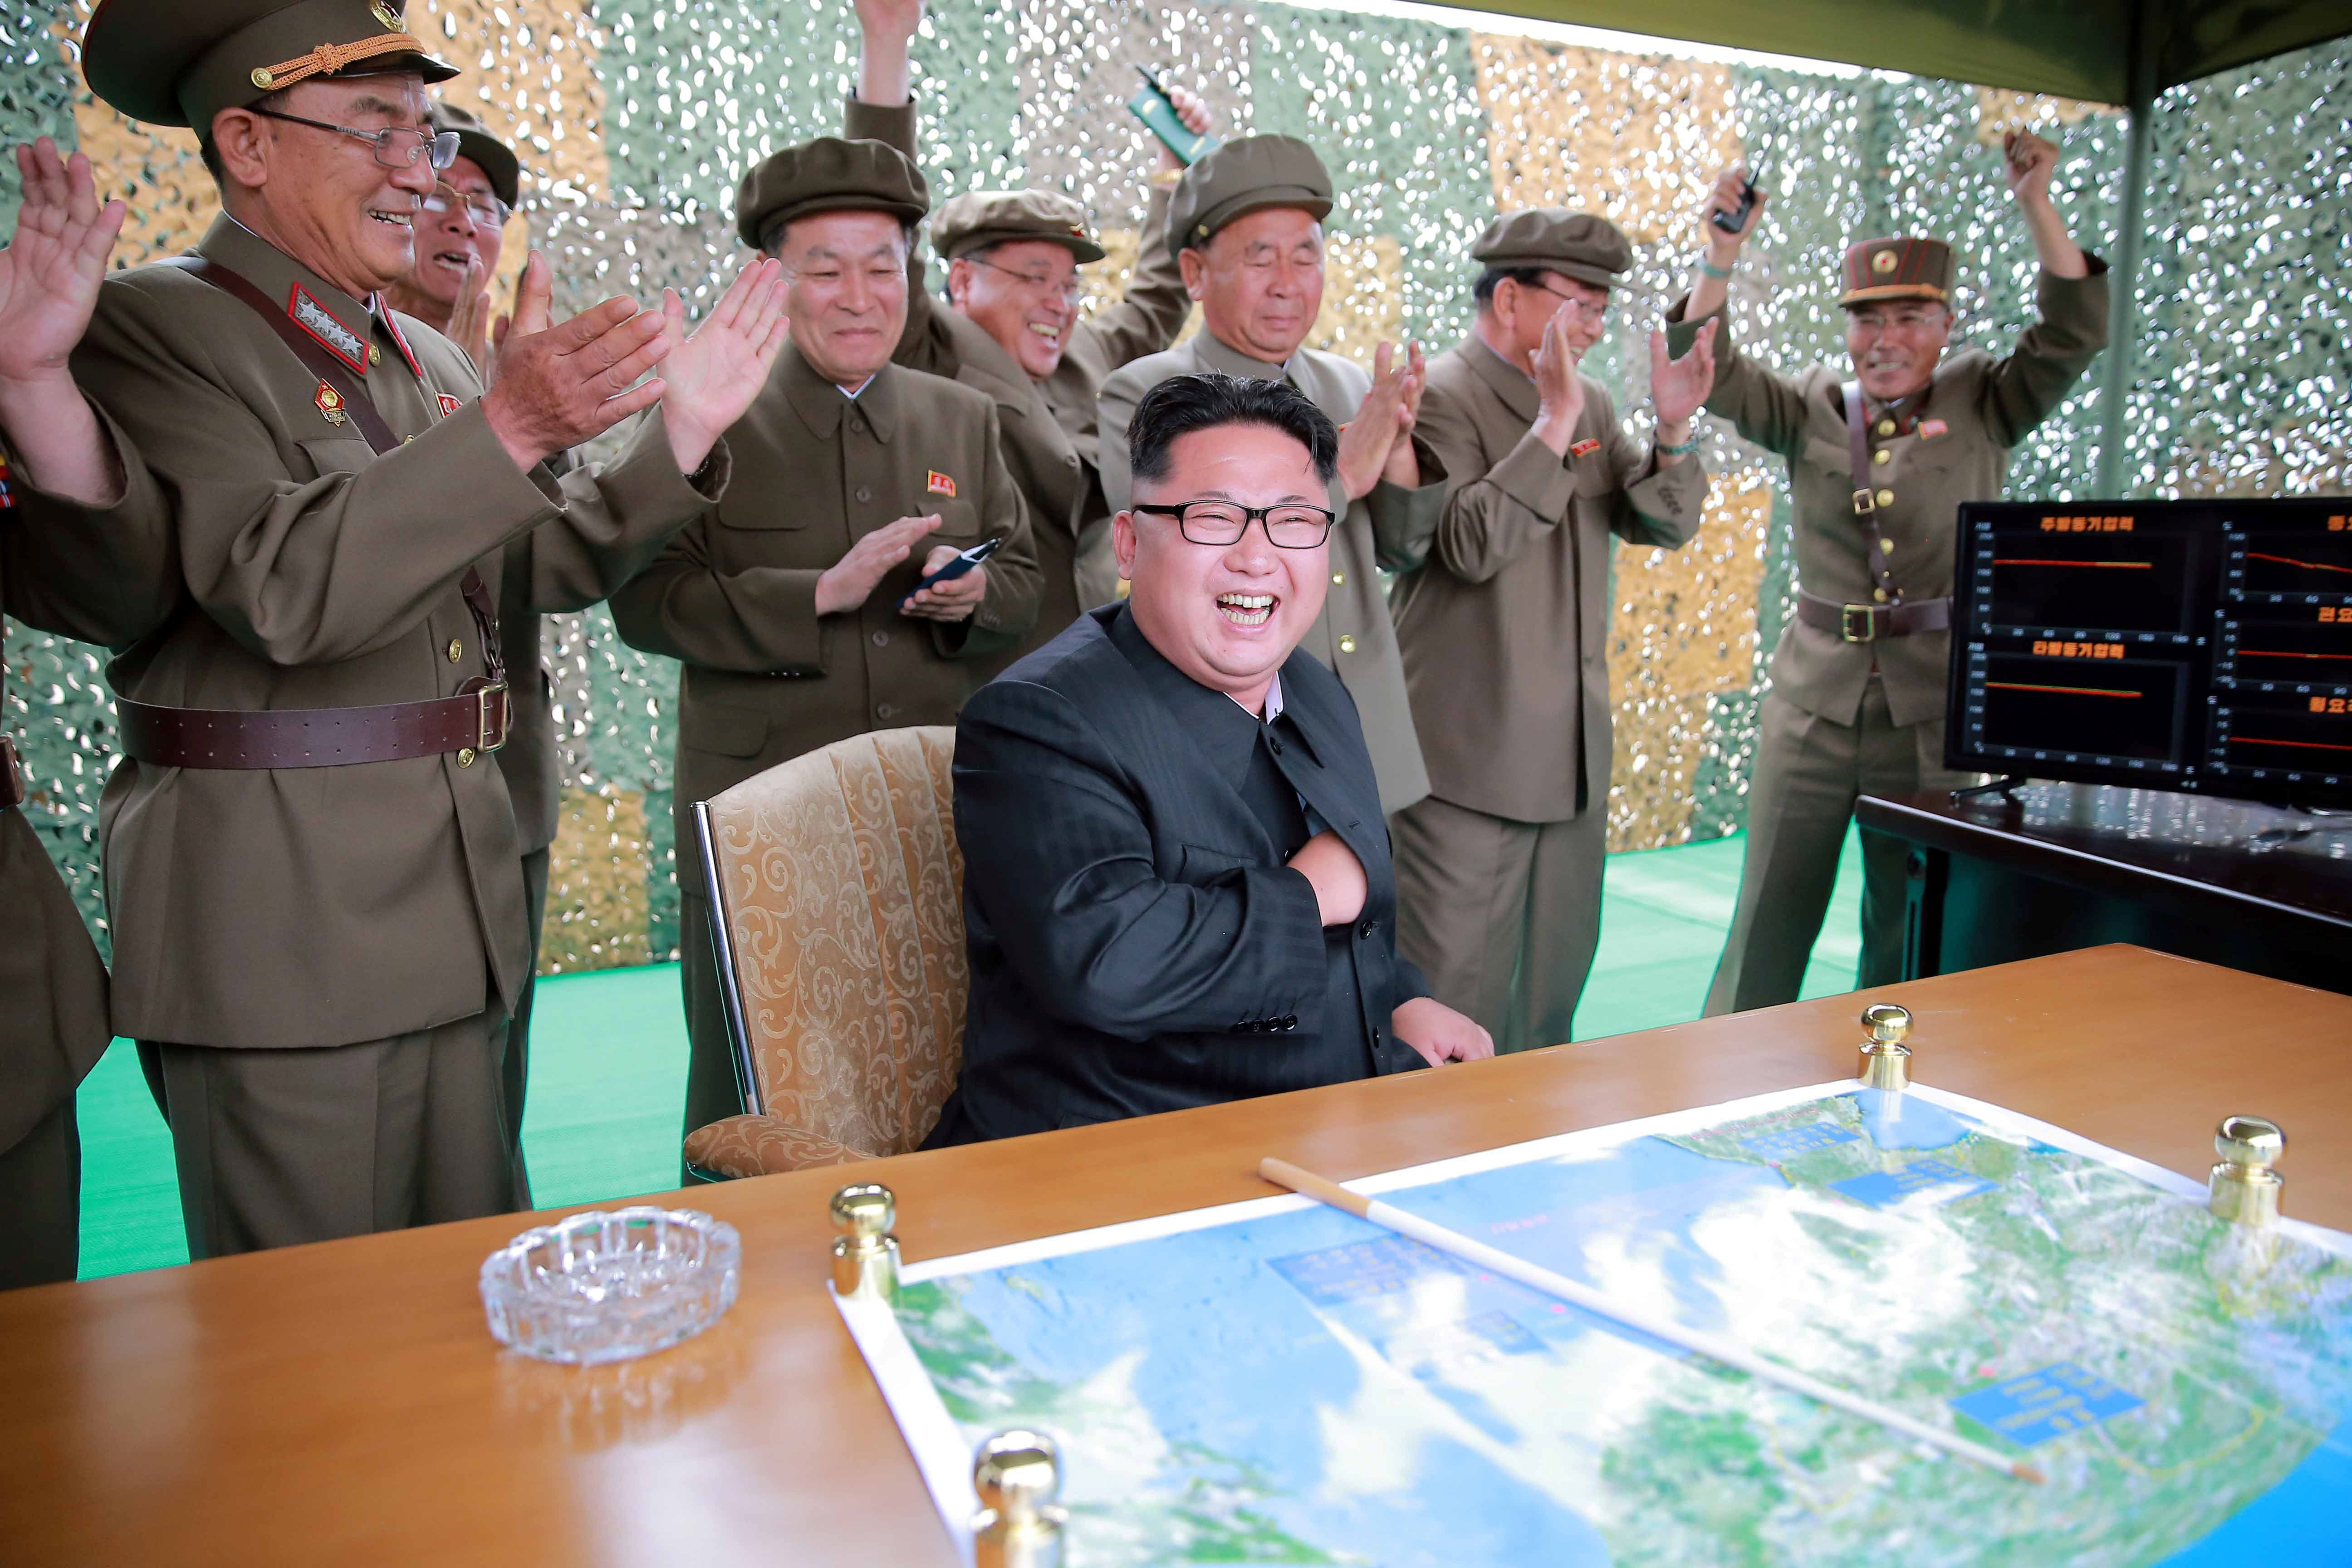 The U.S. recently angered North Korea by blacklisting its leader Kim Jong Un for human rights